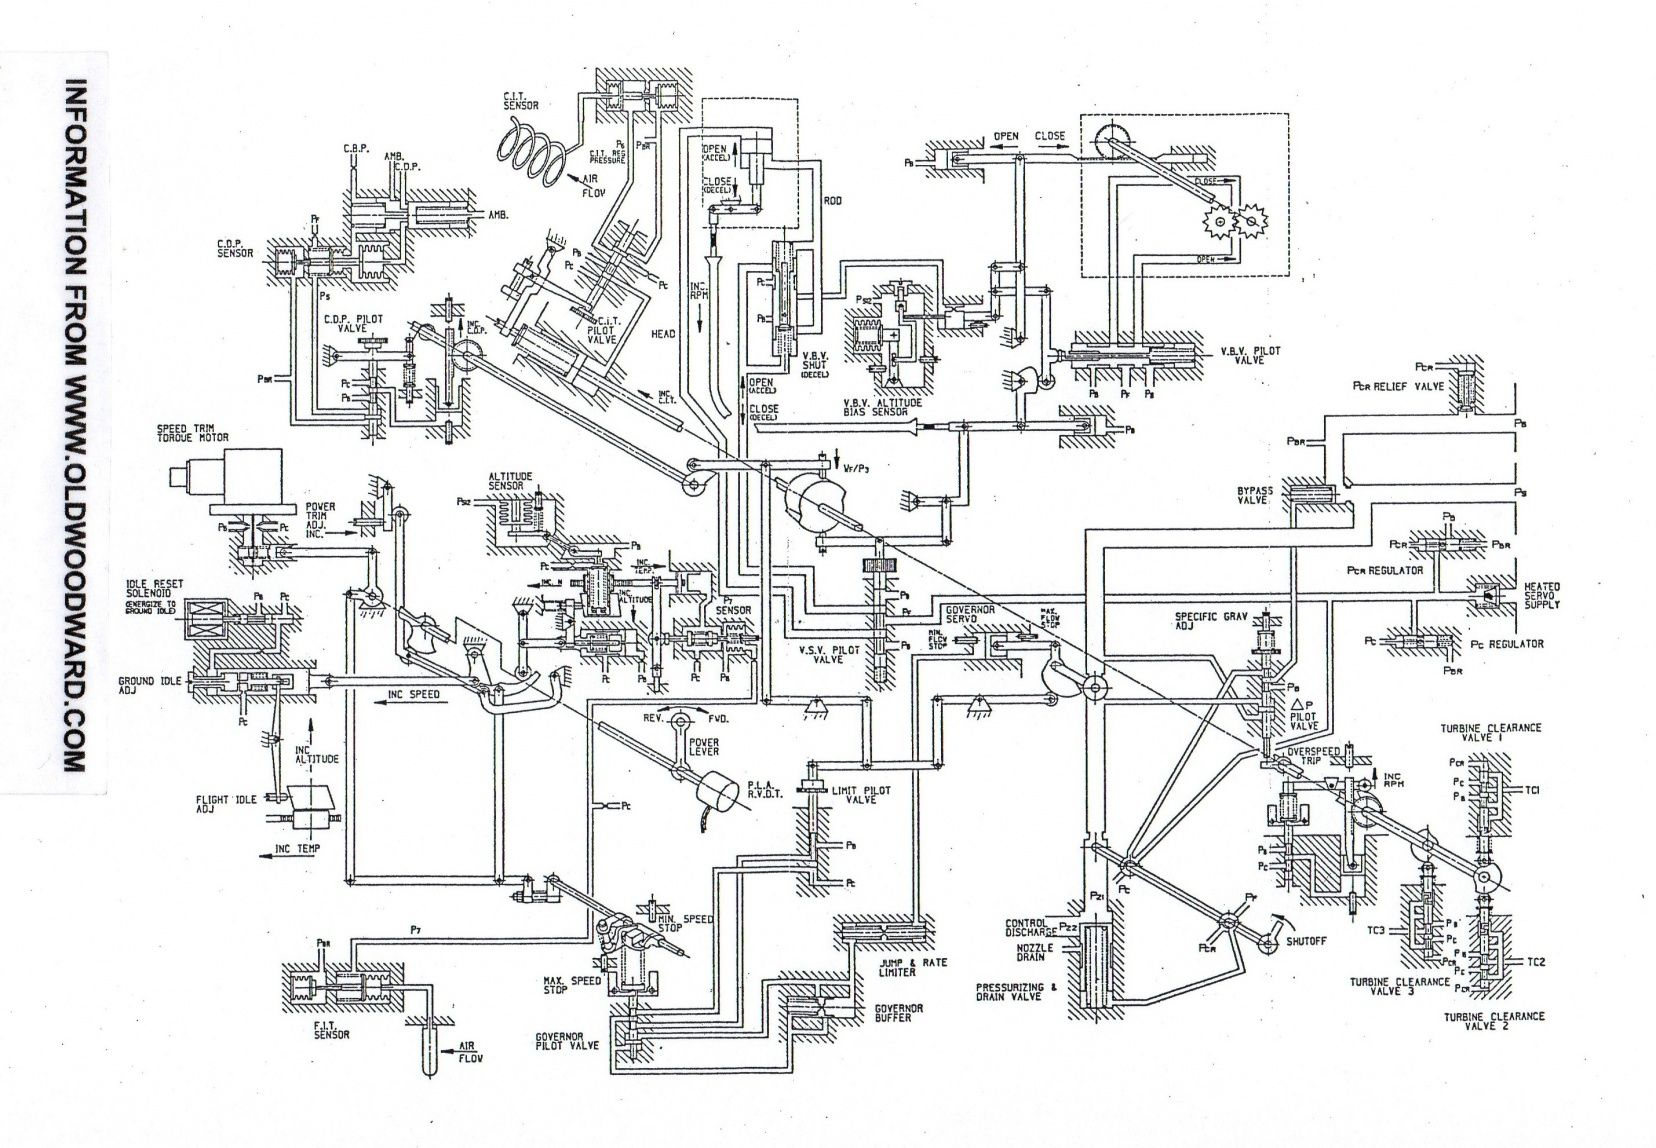 Pin by Bradford Electric's History. on Schematic drawings